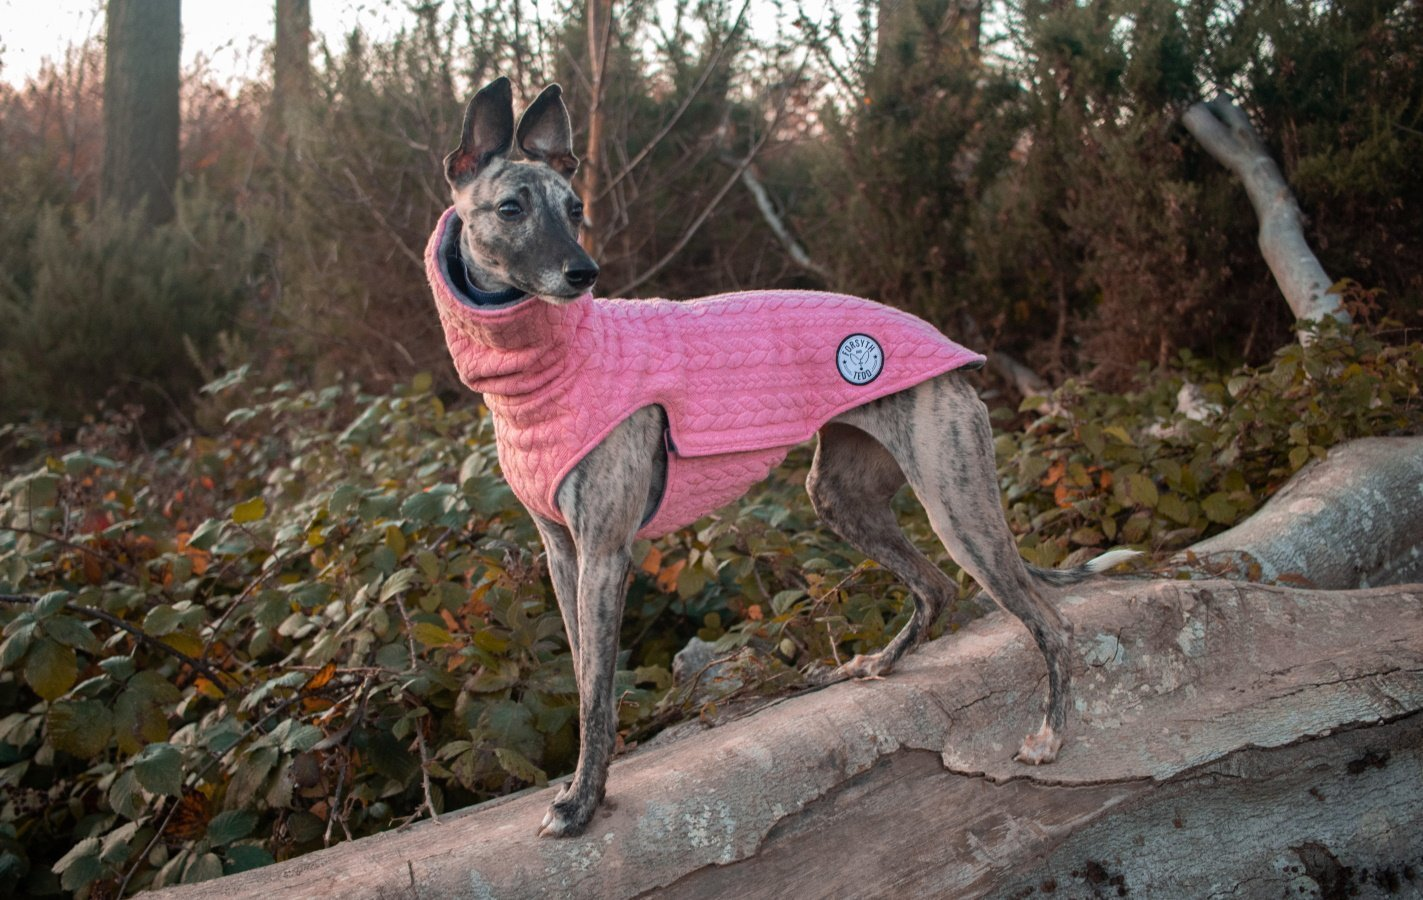 Cable Knit Dog Jumpers from Fosyth and Tedd